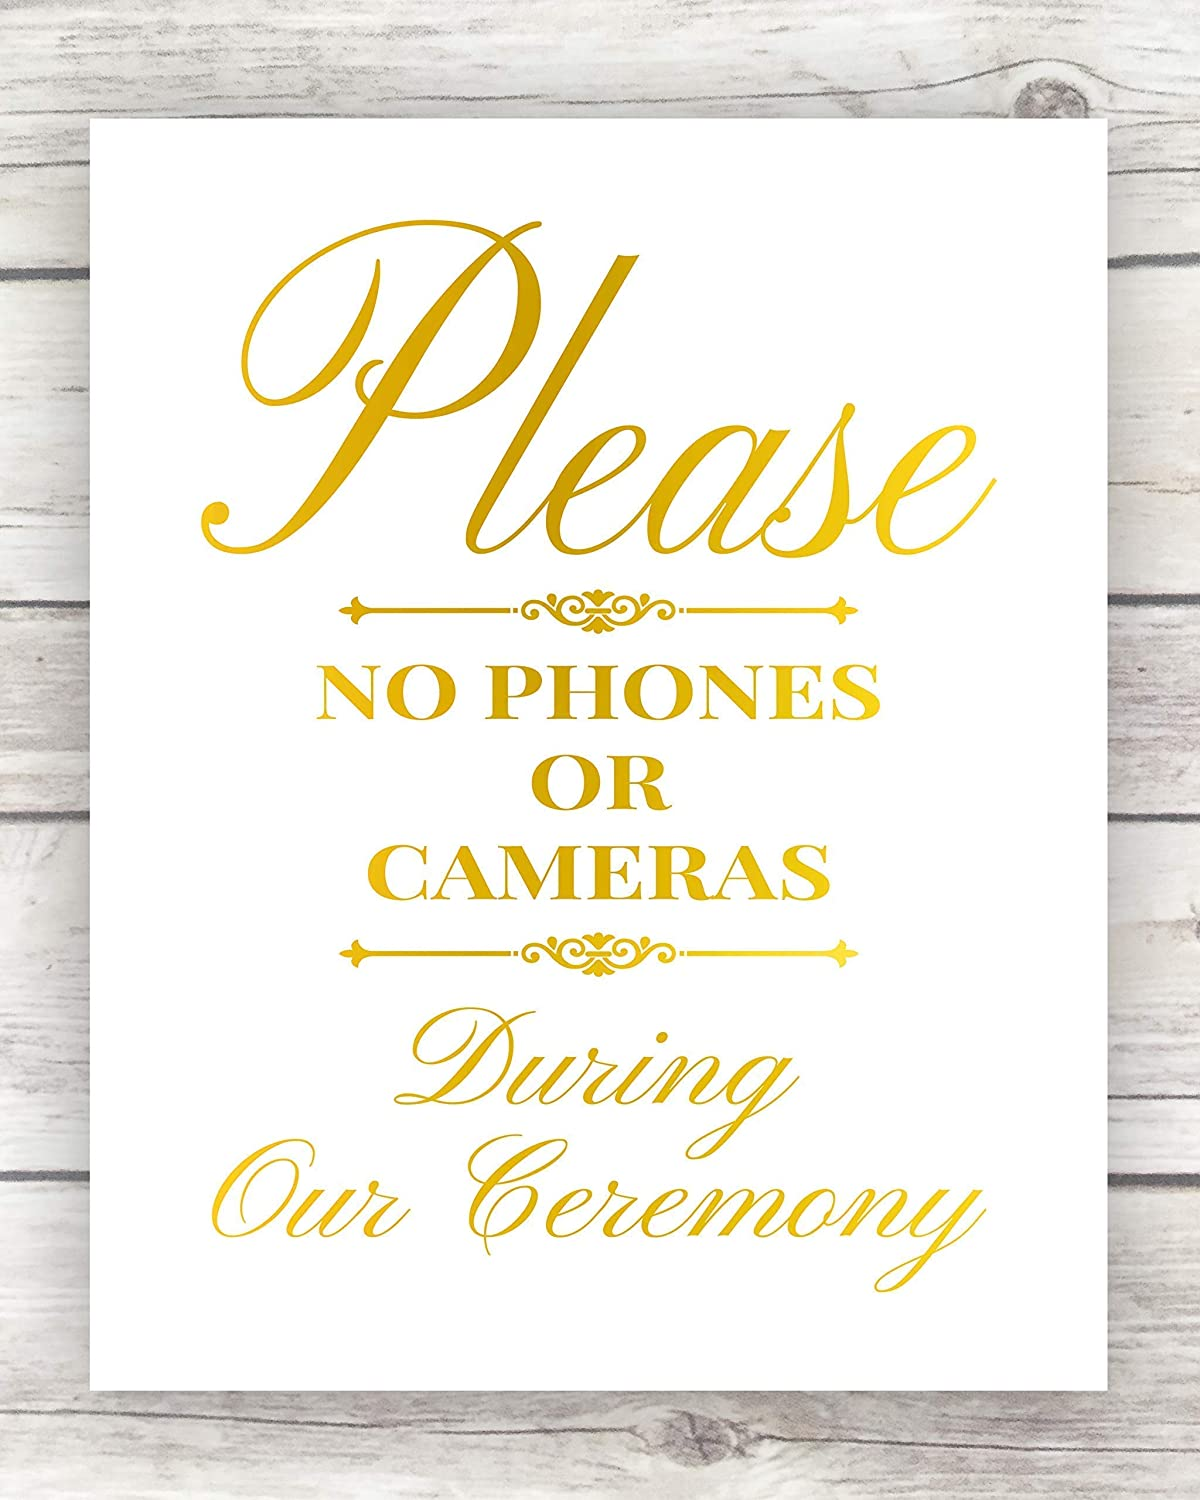 Art Prints Unplugged ceremony sign // Wedding ceremony // Ceremony signage // Gold foil //